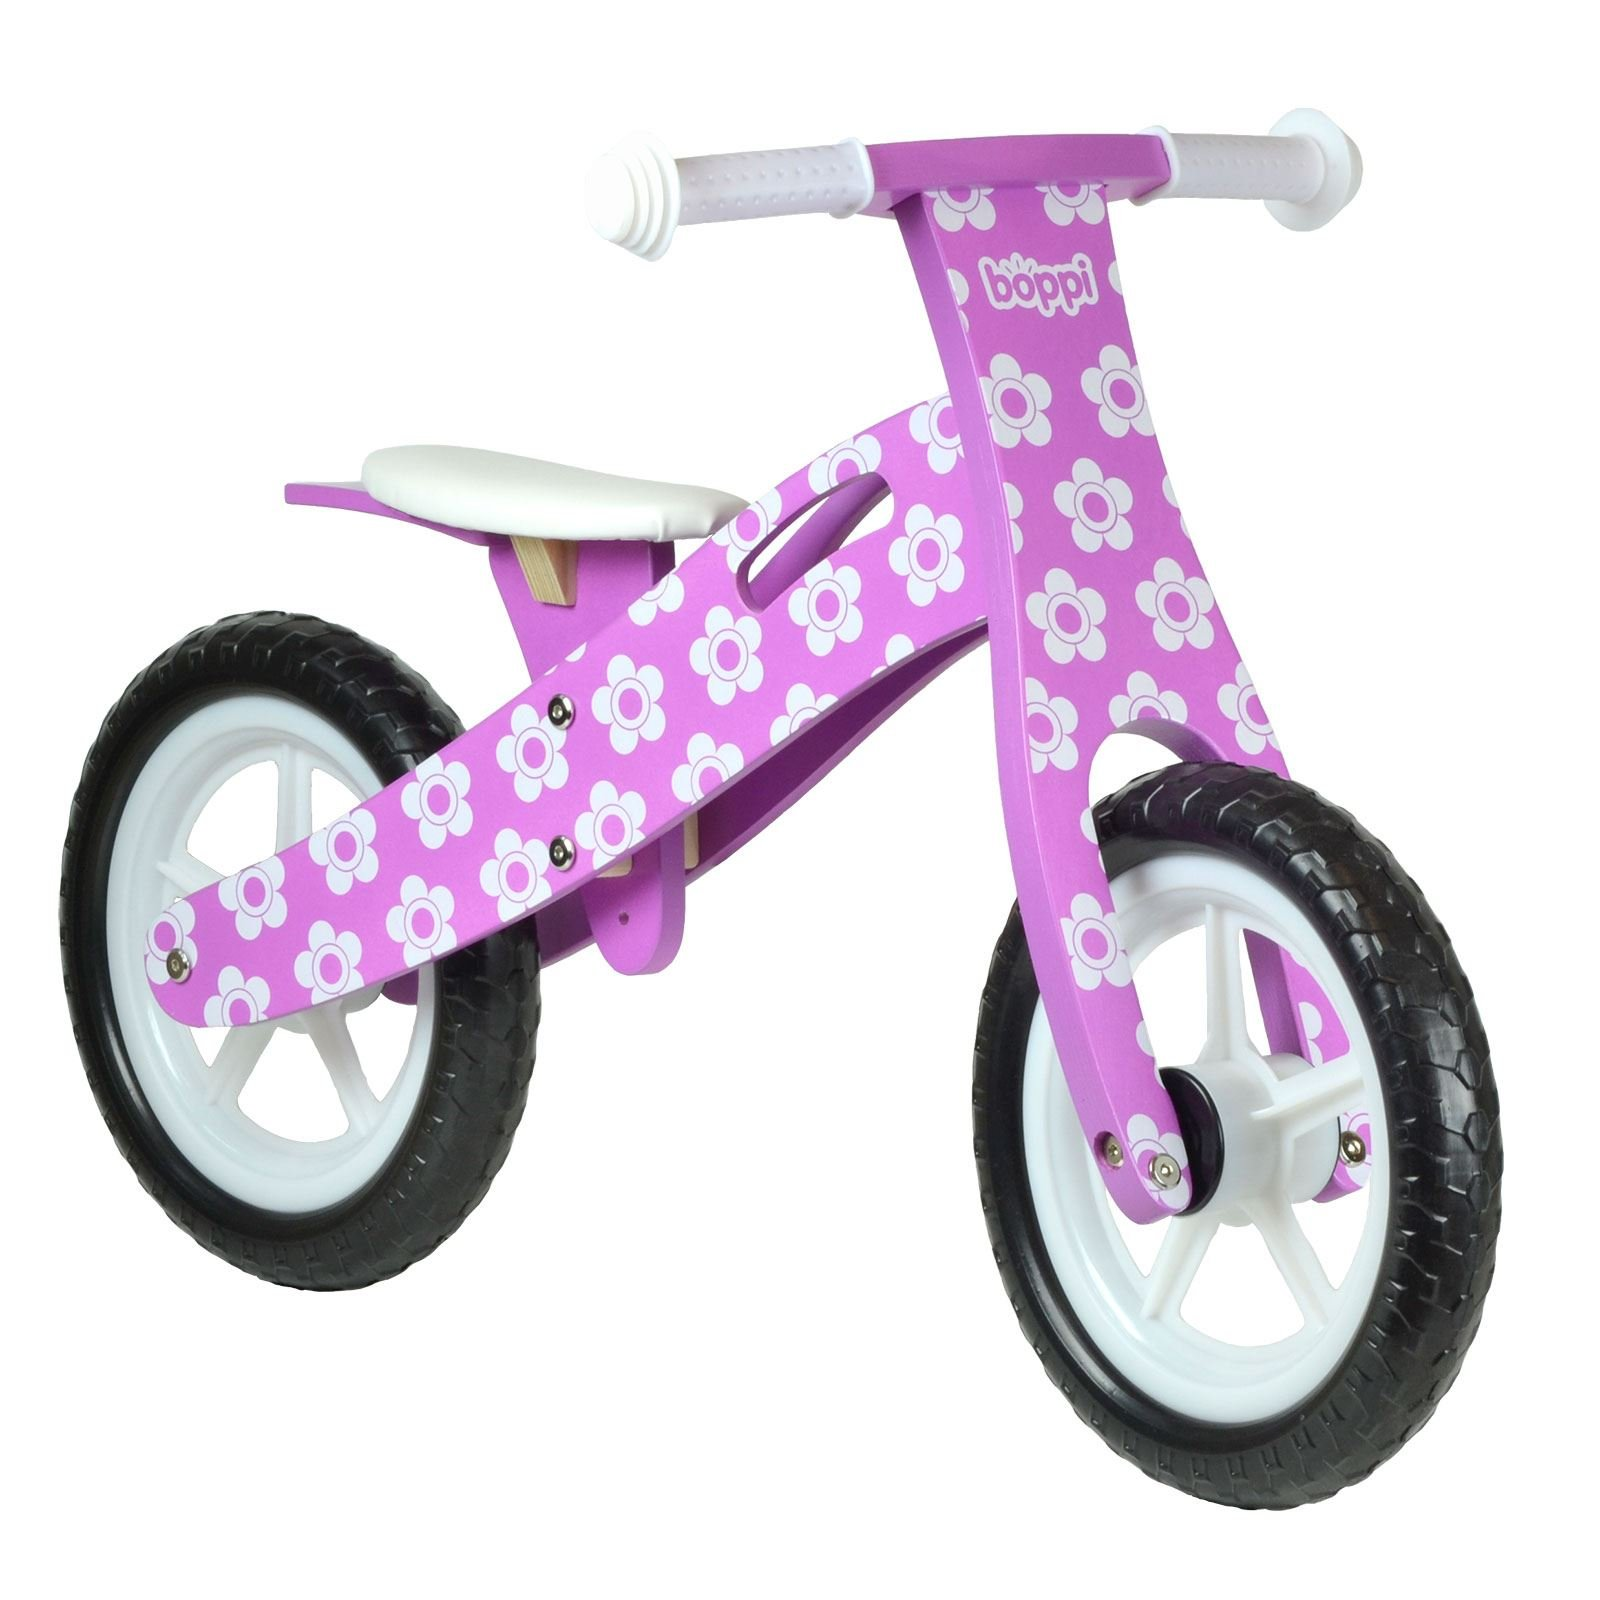 boppi Kids Wooden Balance Bike - 2, 3, 4 and 5 years - Purple Flower